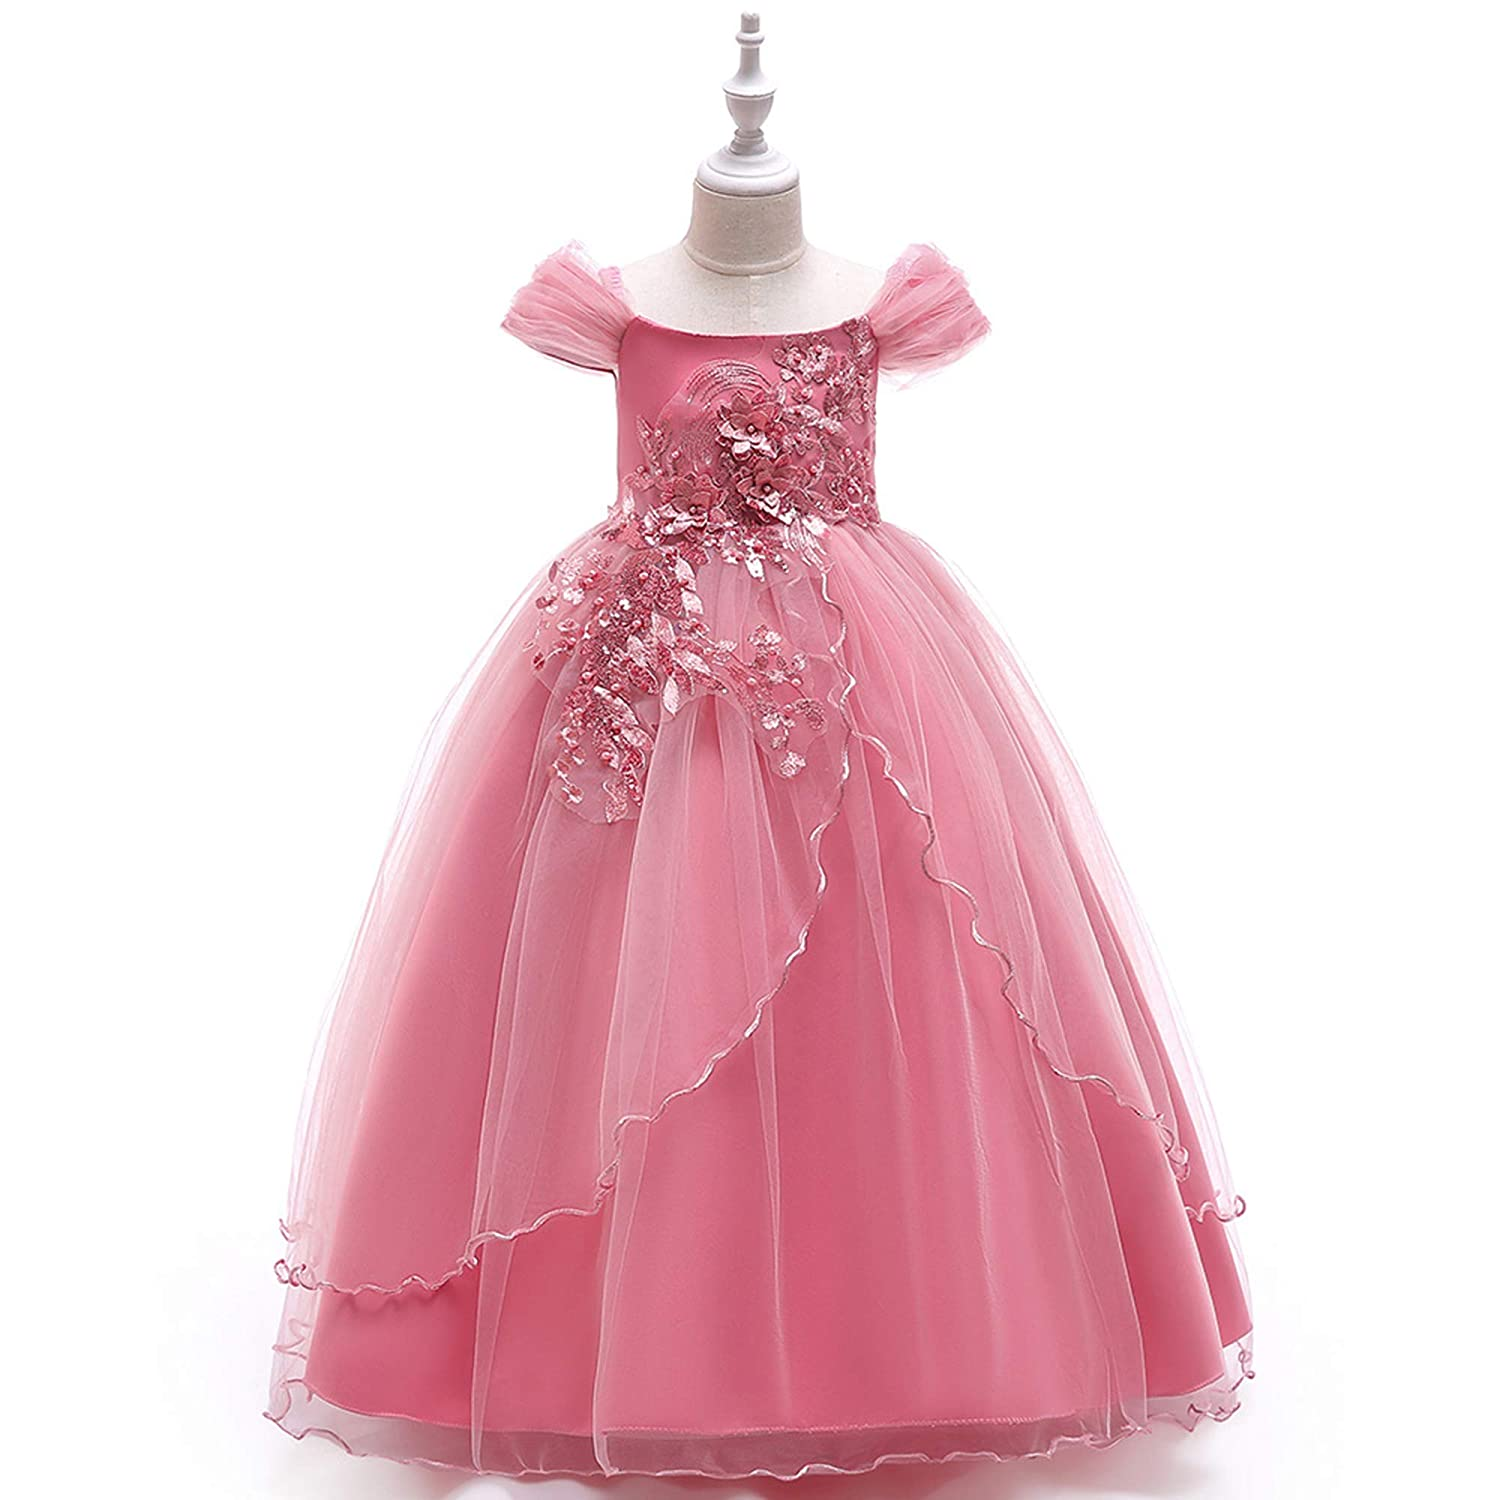 Amazon.com  NOMSOCR Kids Lace Costume Long Dress Girl Prom Ball Gown  Christmas Party Princess Dresses (7-8 Years 8897cba737c1